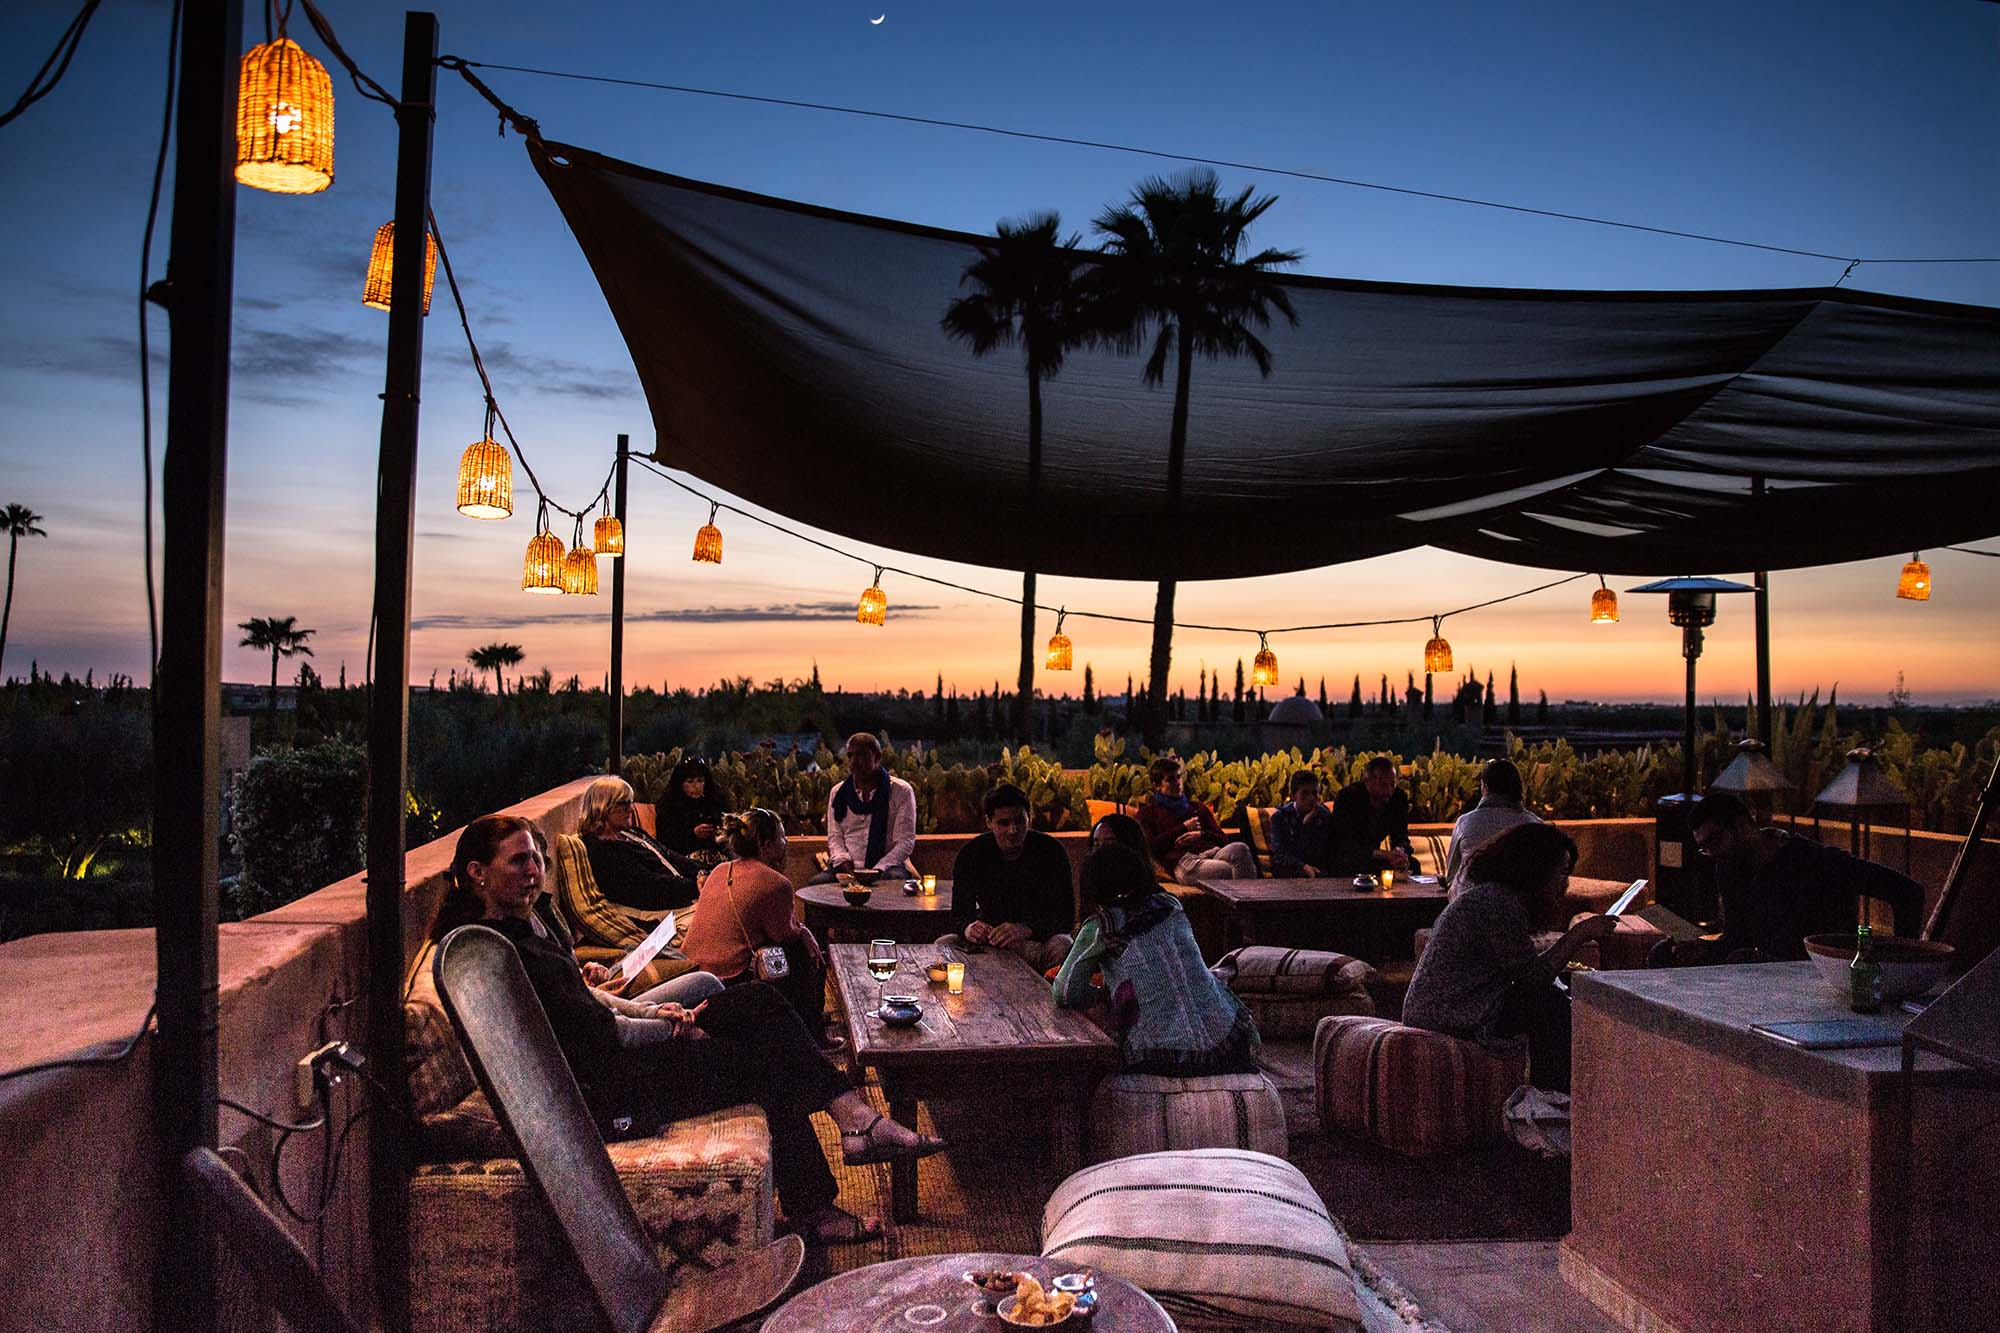 Restaurant Rooftop Maison Hotes Marrakech THE SOURCE Slide 3